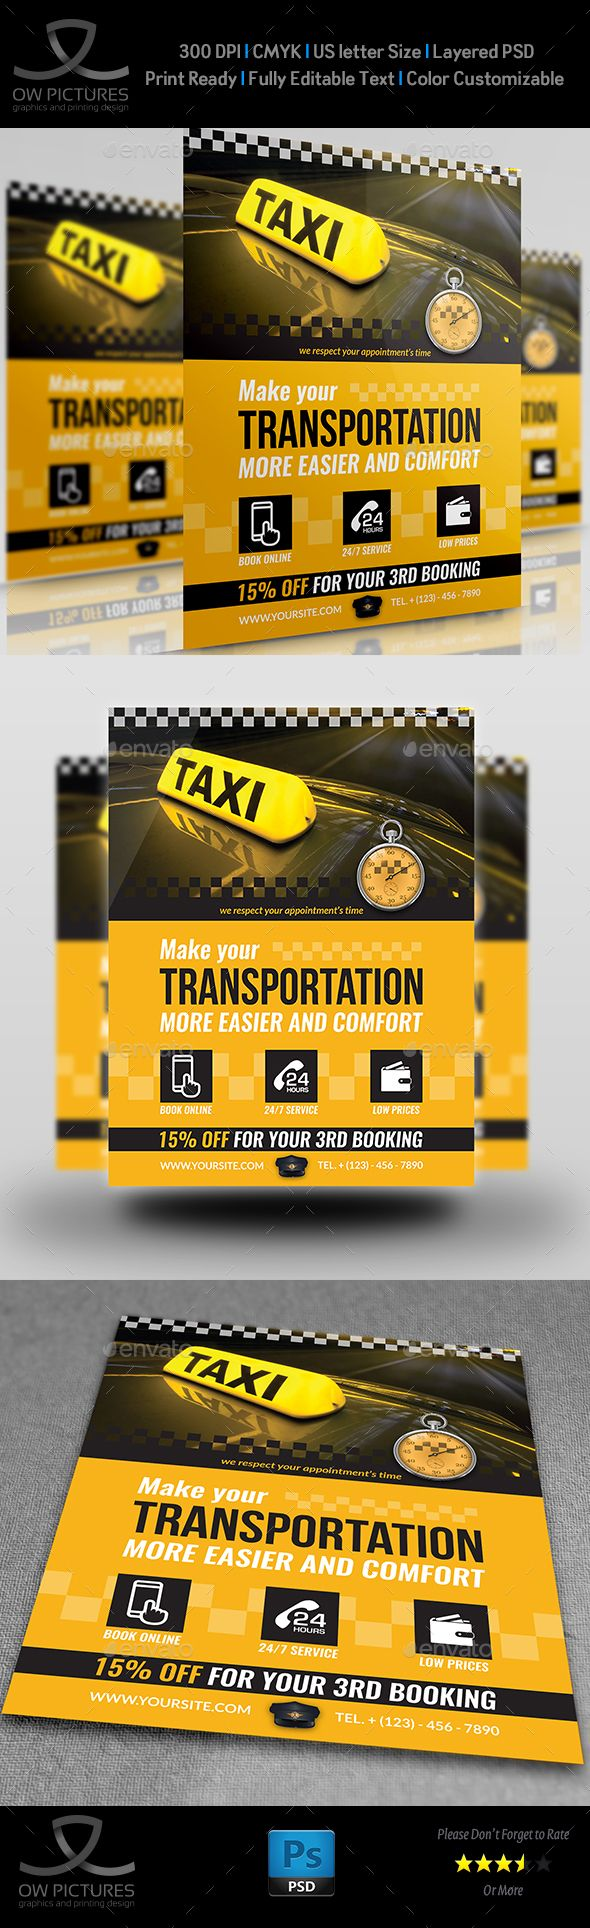 taxi service flyer template flyer template flyers and templates taxi service flyer template psd here graphicriver net